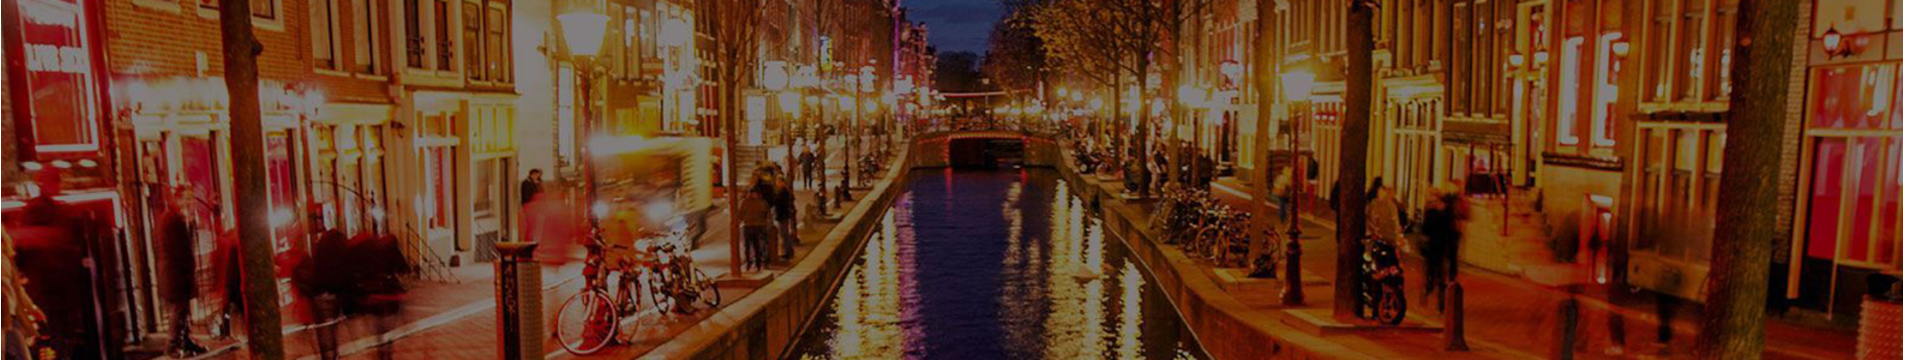 amsterdam-stag-do-blog-header.jpg